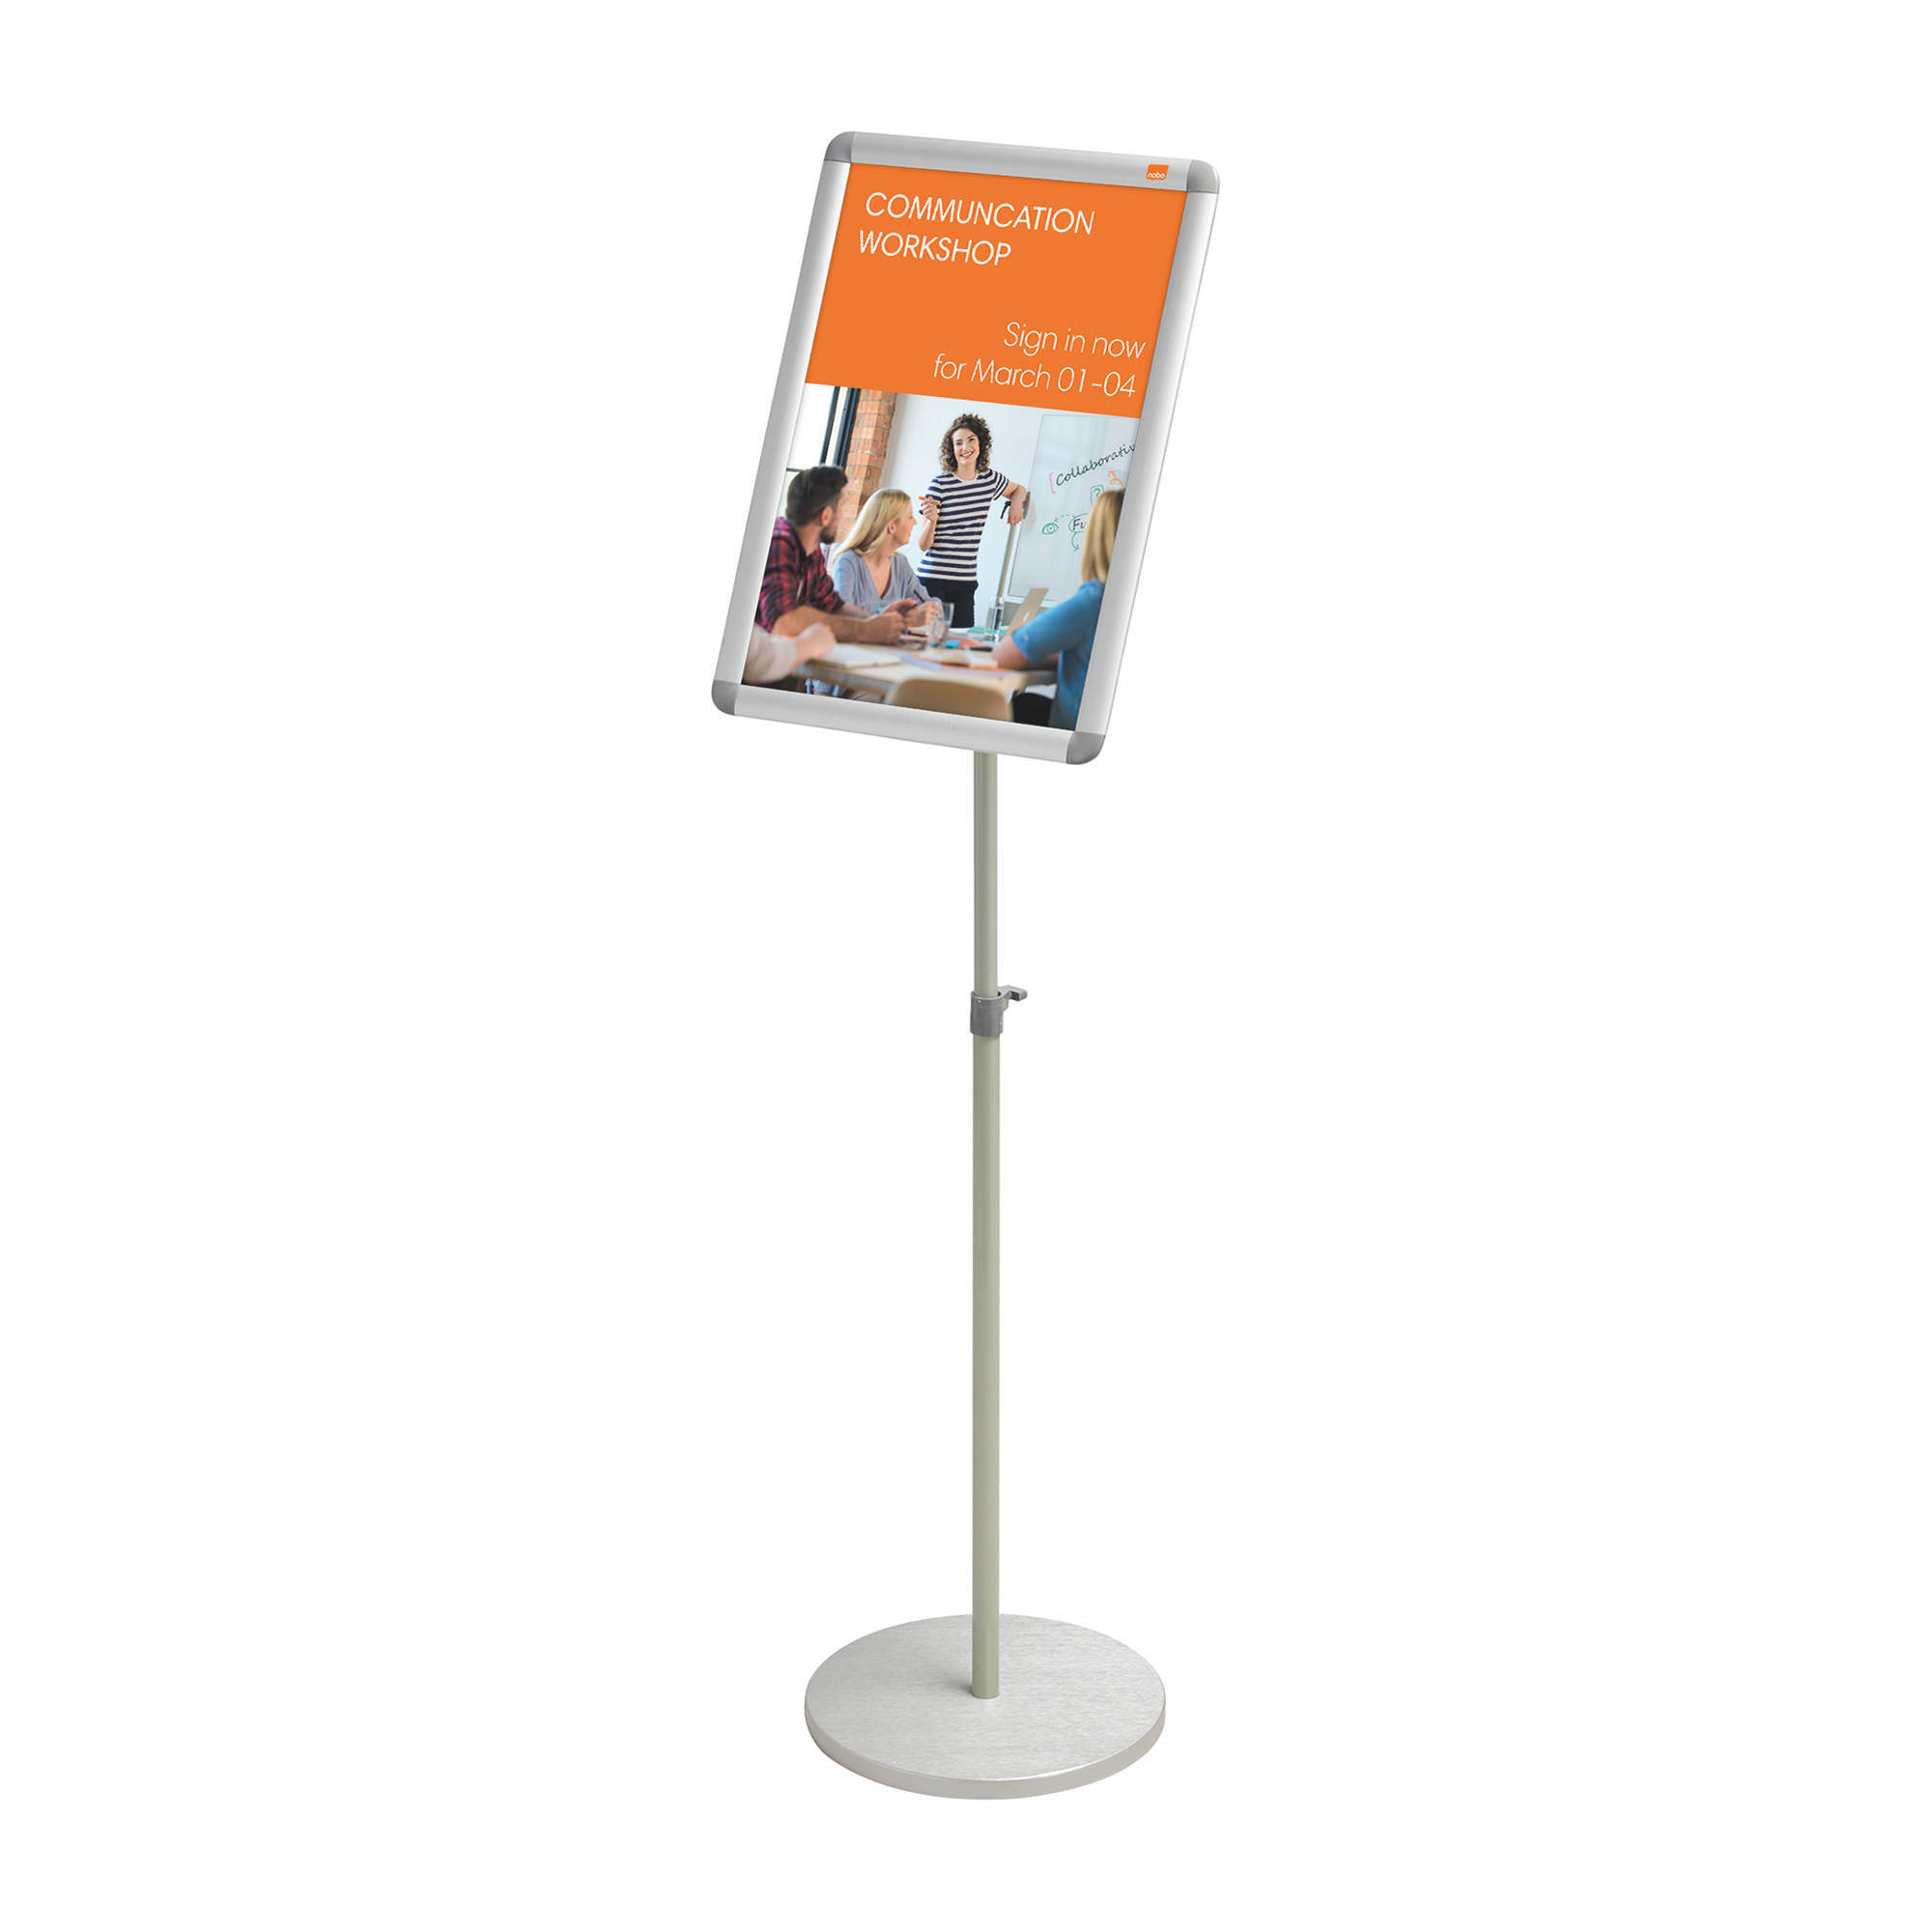 Certificate / Photo Frames Nobo Snap Frame Display Stand for A3 Documents Adjustable Height 950-1470mm Silver Ref 1902384